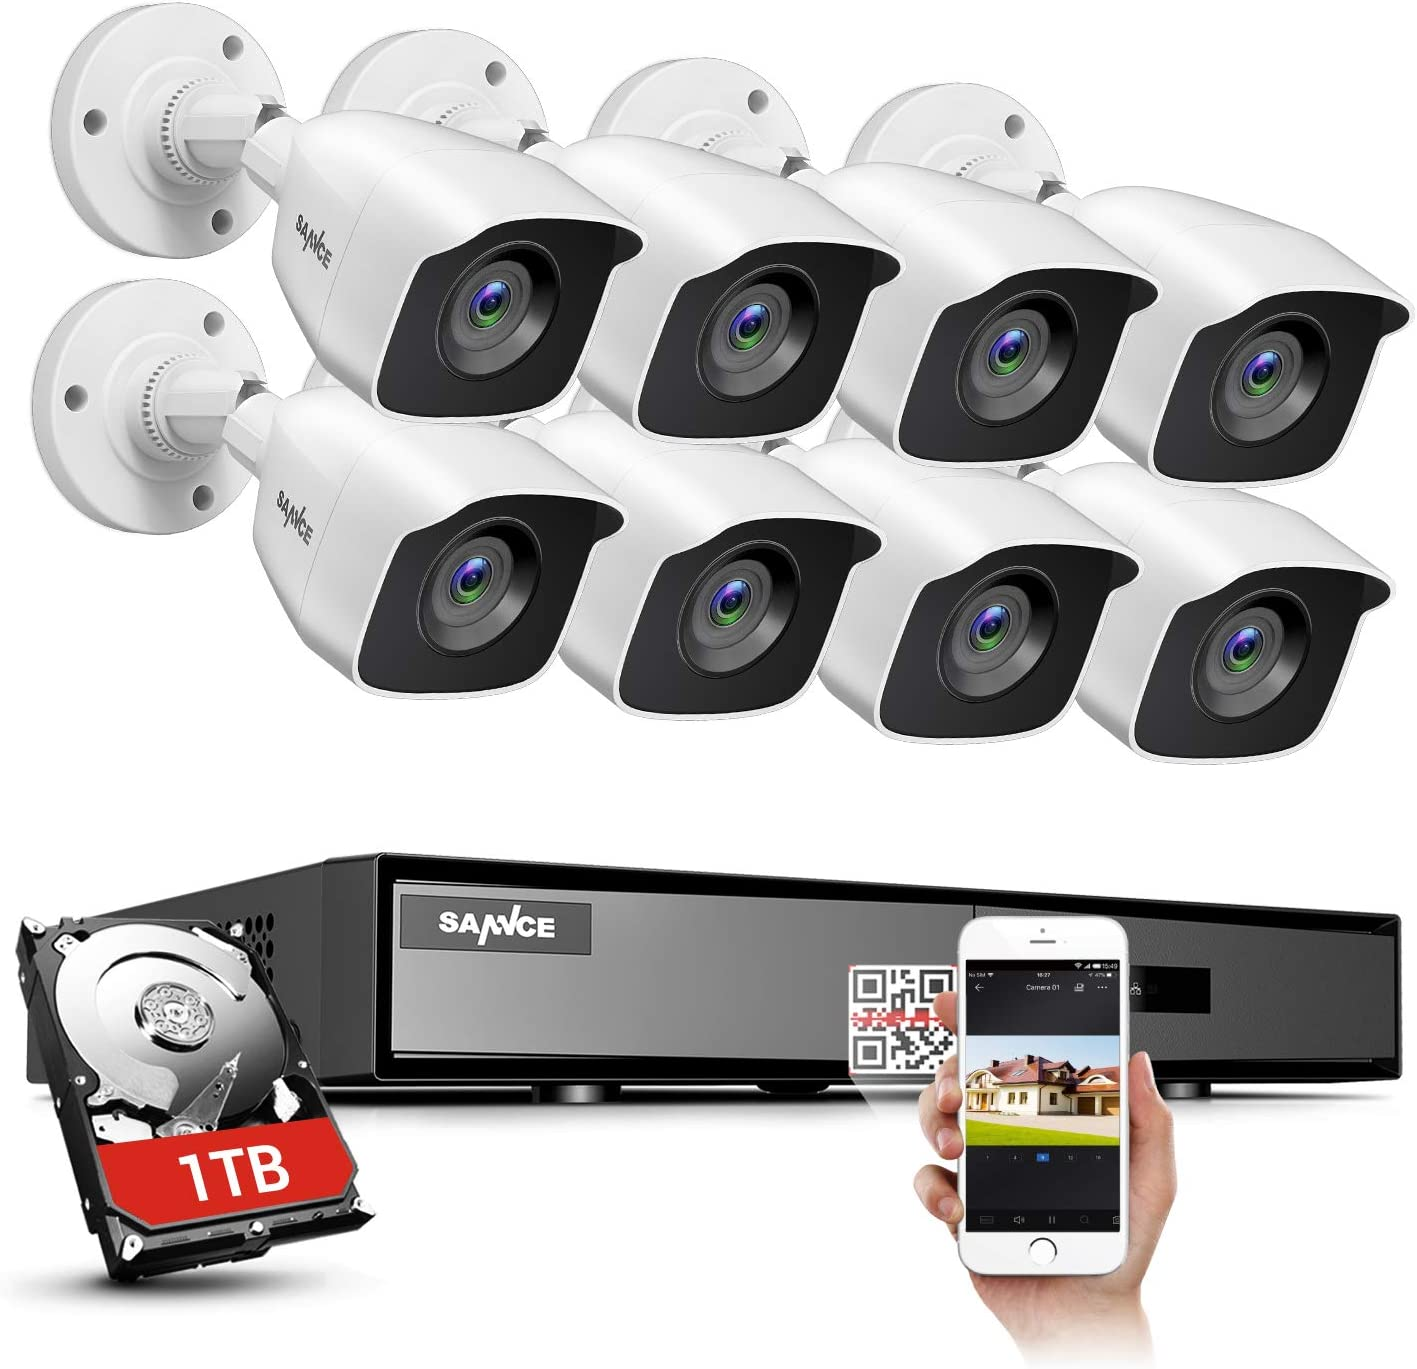 SANNCE 8CH HD-TVI Security Camera System, 1080P Lite CCTV DVR with 1TB Hard Drive and (8) 1080P Outdoor Day/Night Surveillance Cameras, Easy Remote Access Motion Detection,Wired Home Indoor System